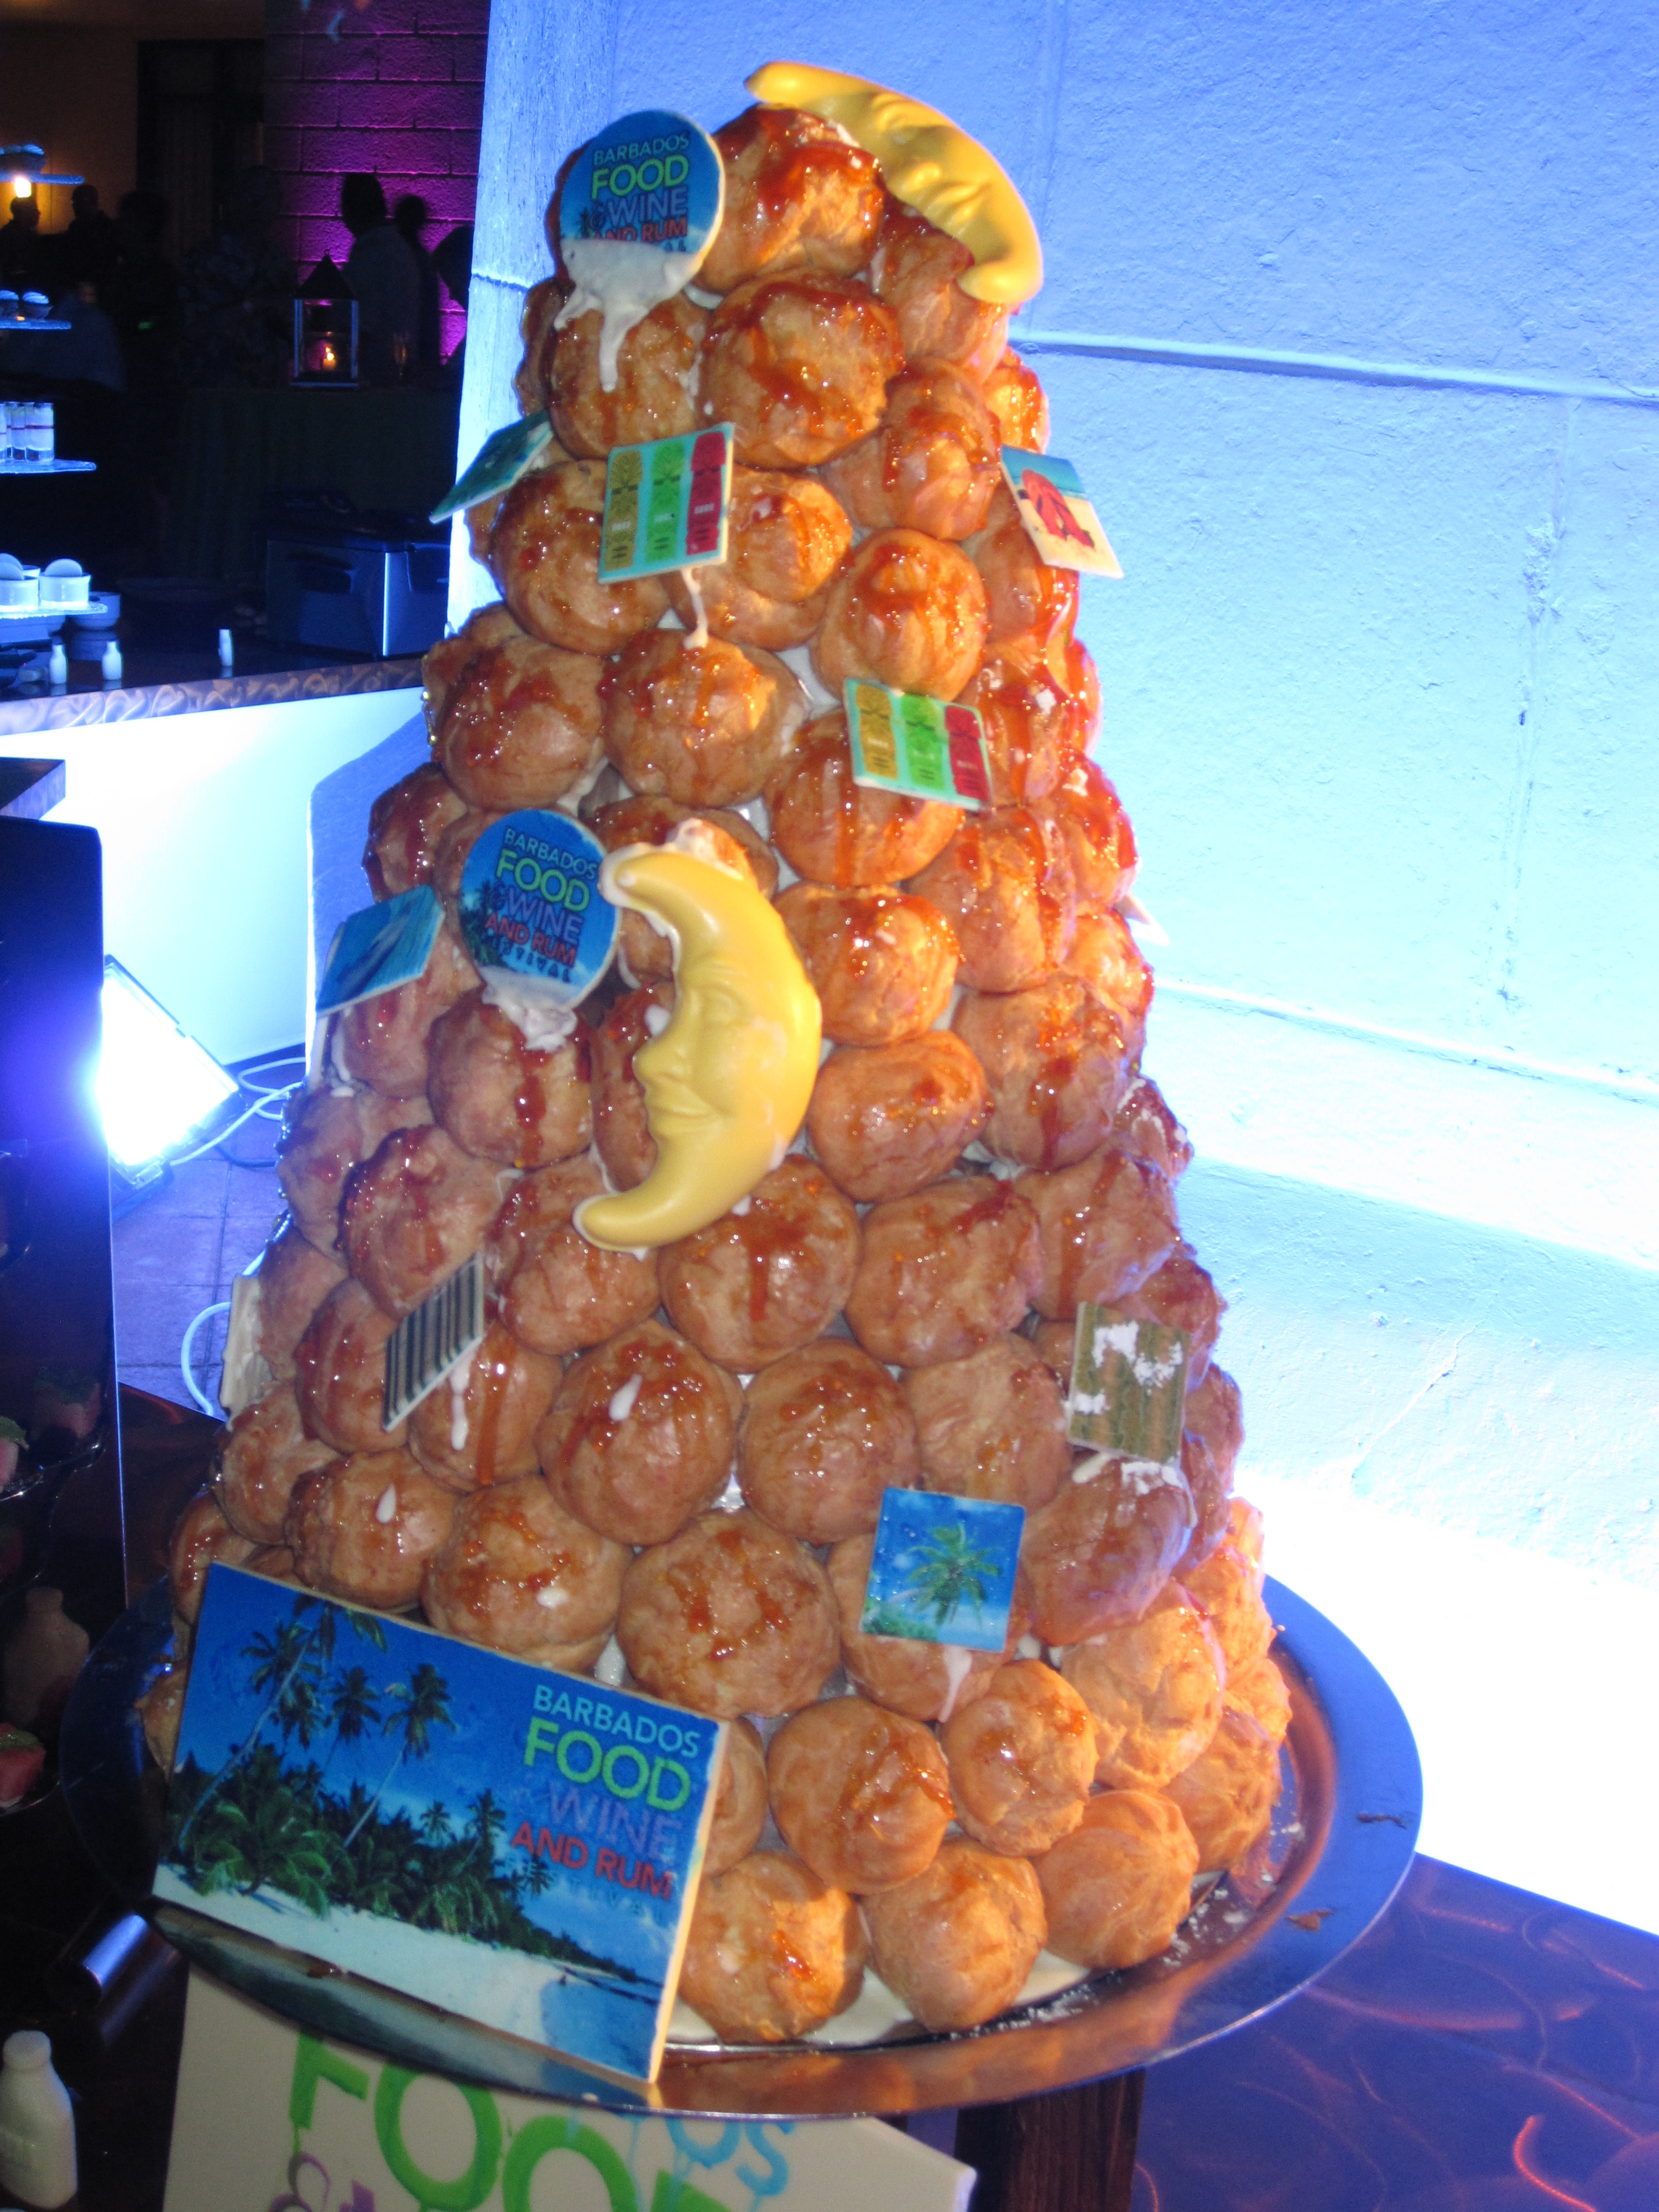 Croquembouche, a cream puff tower, dotted with edible chocolate was finger-licking good.